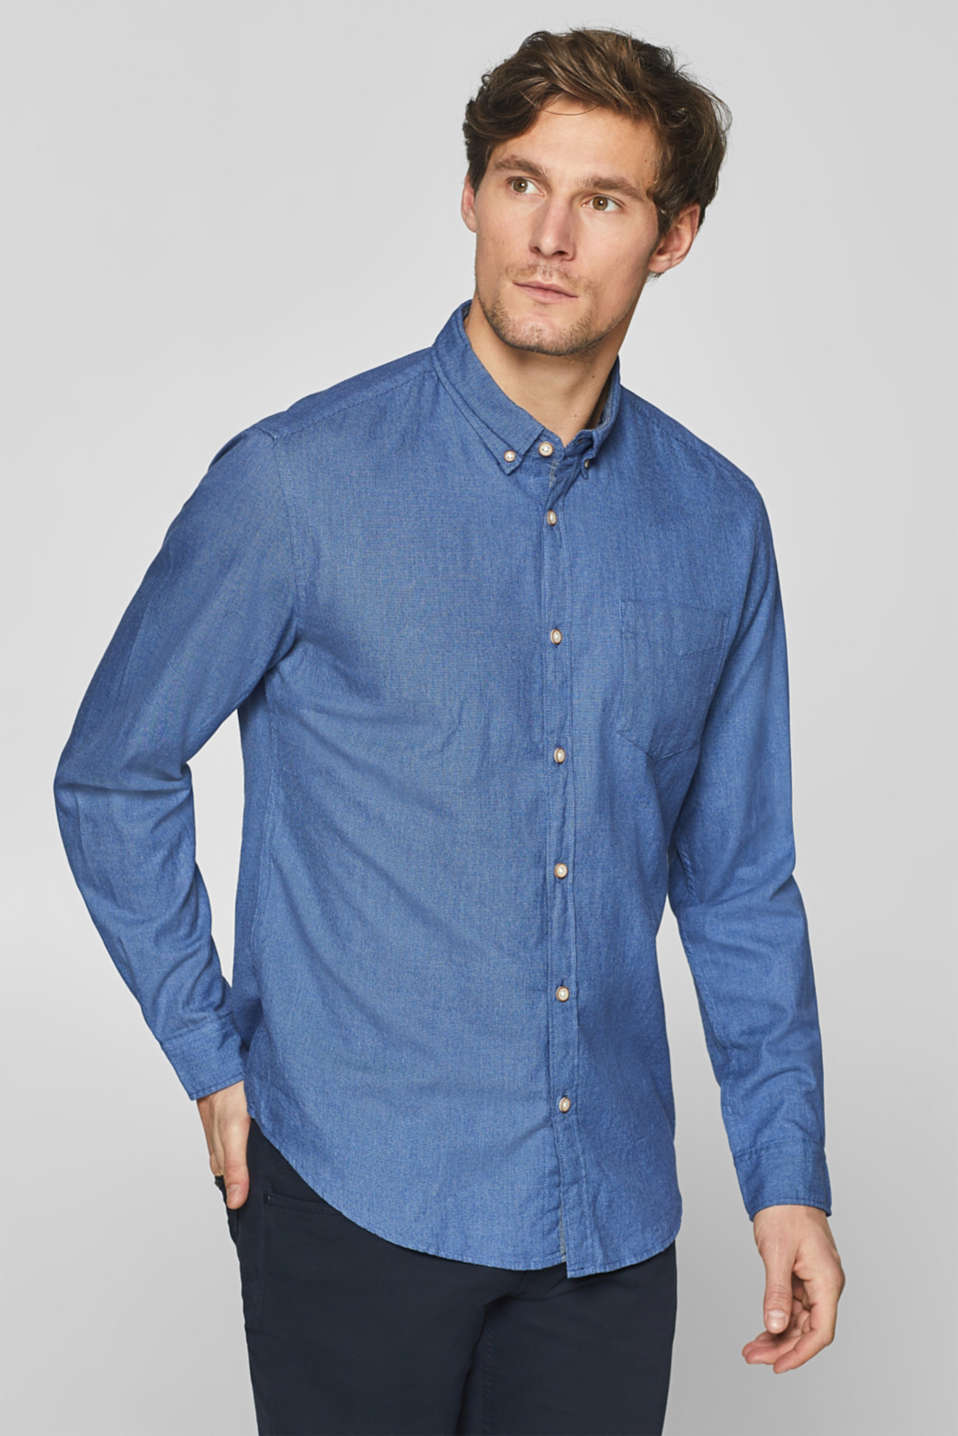 Esprit - Shirt with a two-tone texture, 100% cotton